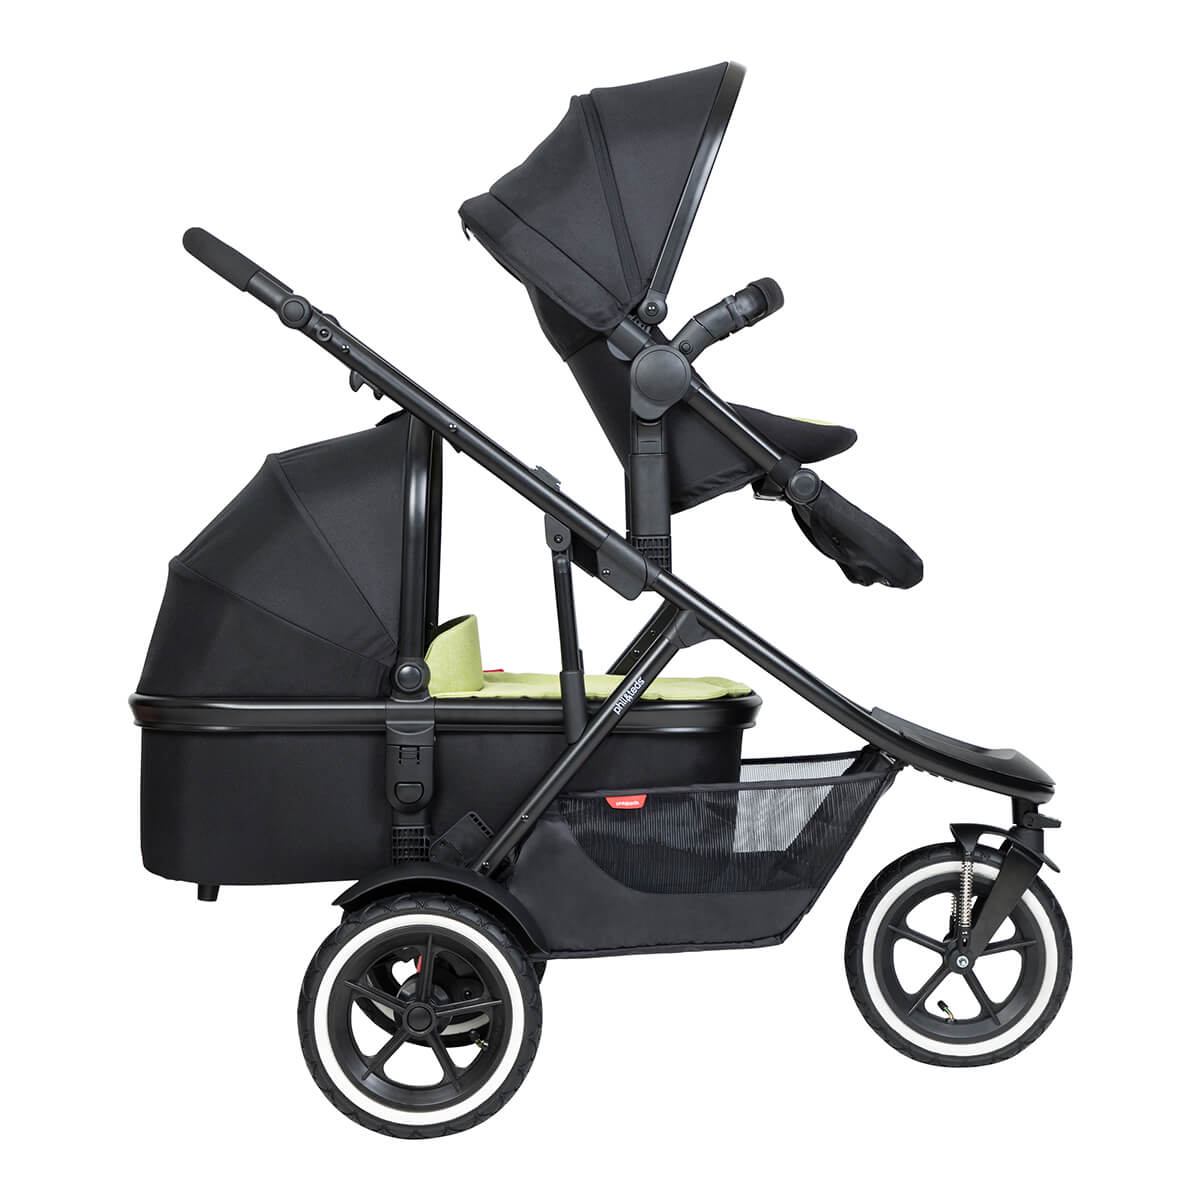 https://cdn.accentuate.io/4394876928105/19119322726505/philteds-sport-buggy-with-double-kit-extended-clip-and-snug-carrycot-side-view-v1626484878085.jpg?1200x1200